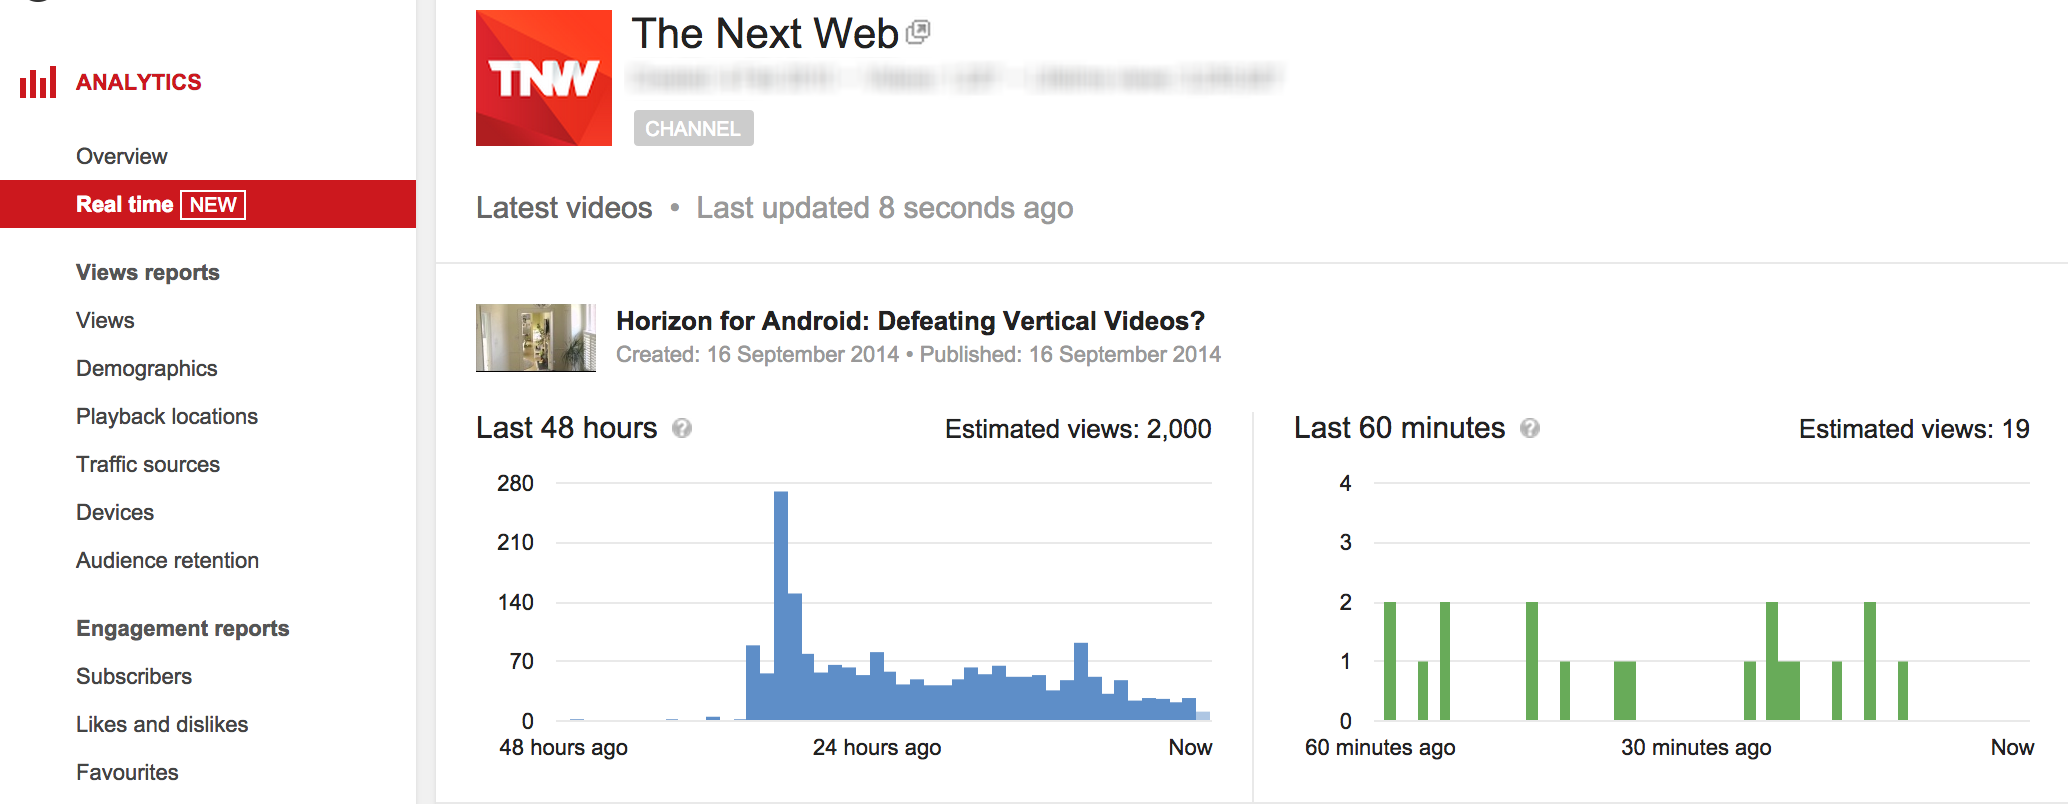 YouTube Adds Minute-by-Minute Analytics